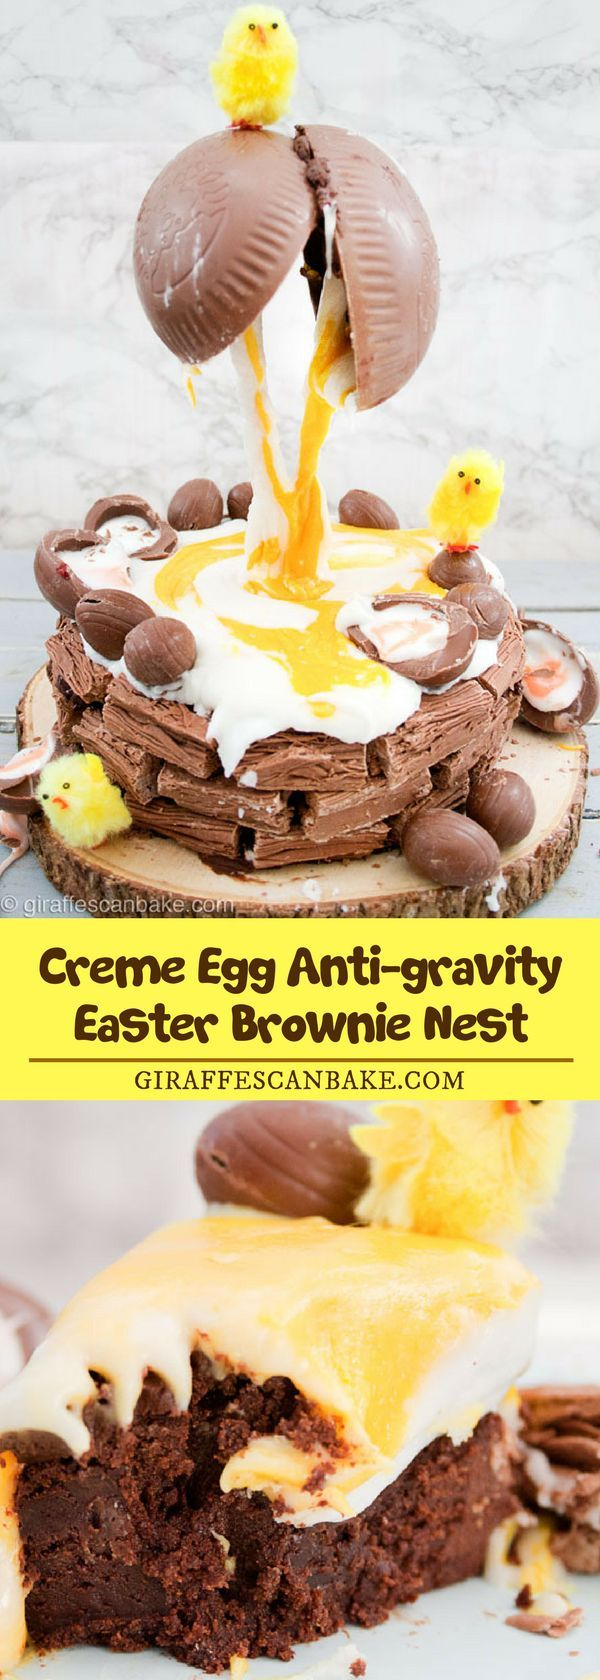 Creme Egg Anti-gravity Easter Brownie Nest is a fudgy brownie cake smothered in rich chocolate ganache, in a Cadbury Flake nest. With a cracked Chocolate Egg covering the whole thing in creme egg filling! Ridiculously decadent, amazingly tasty and surprisingly simple! #dessert #eastertreat #brownies